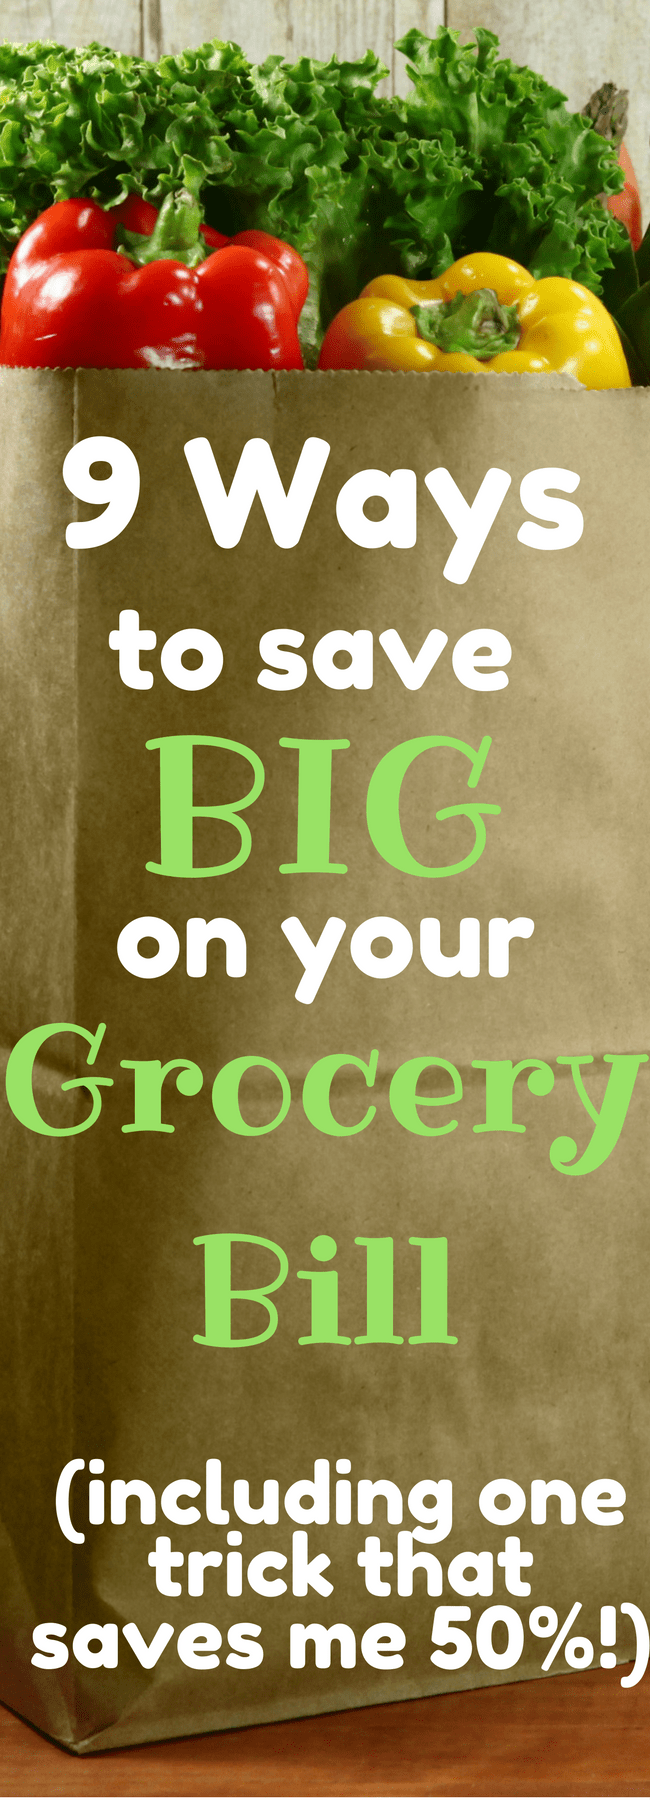 grocery shopping on a budget /  grocery list on a budget / grocery budgets / grocery shopping /  grocery on a budget / grocery tips / grocery planning via @clarkscondensed